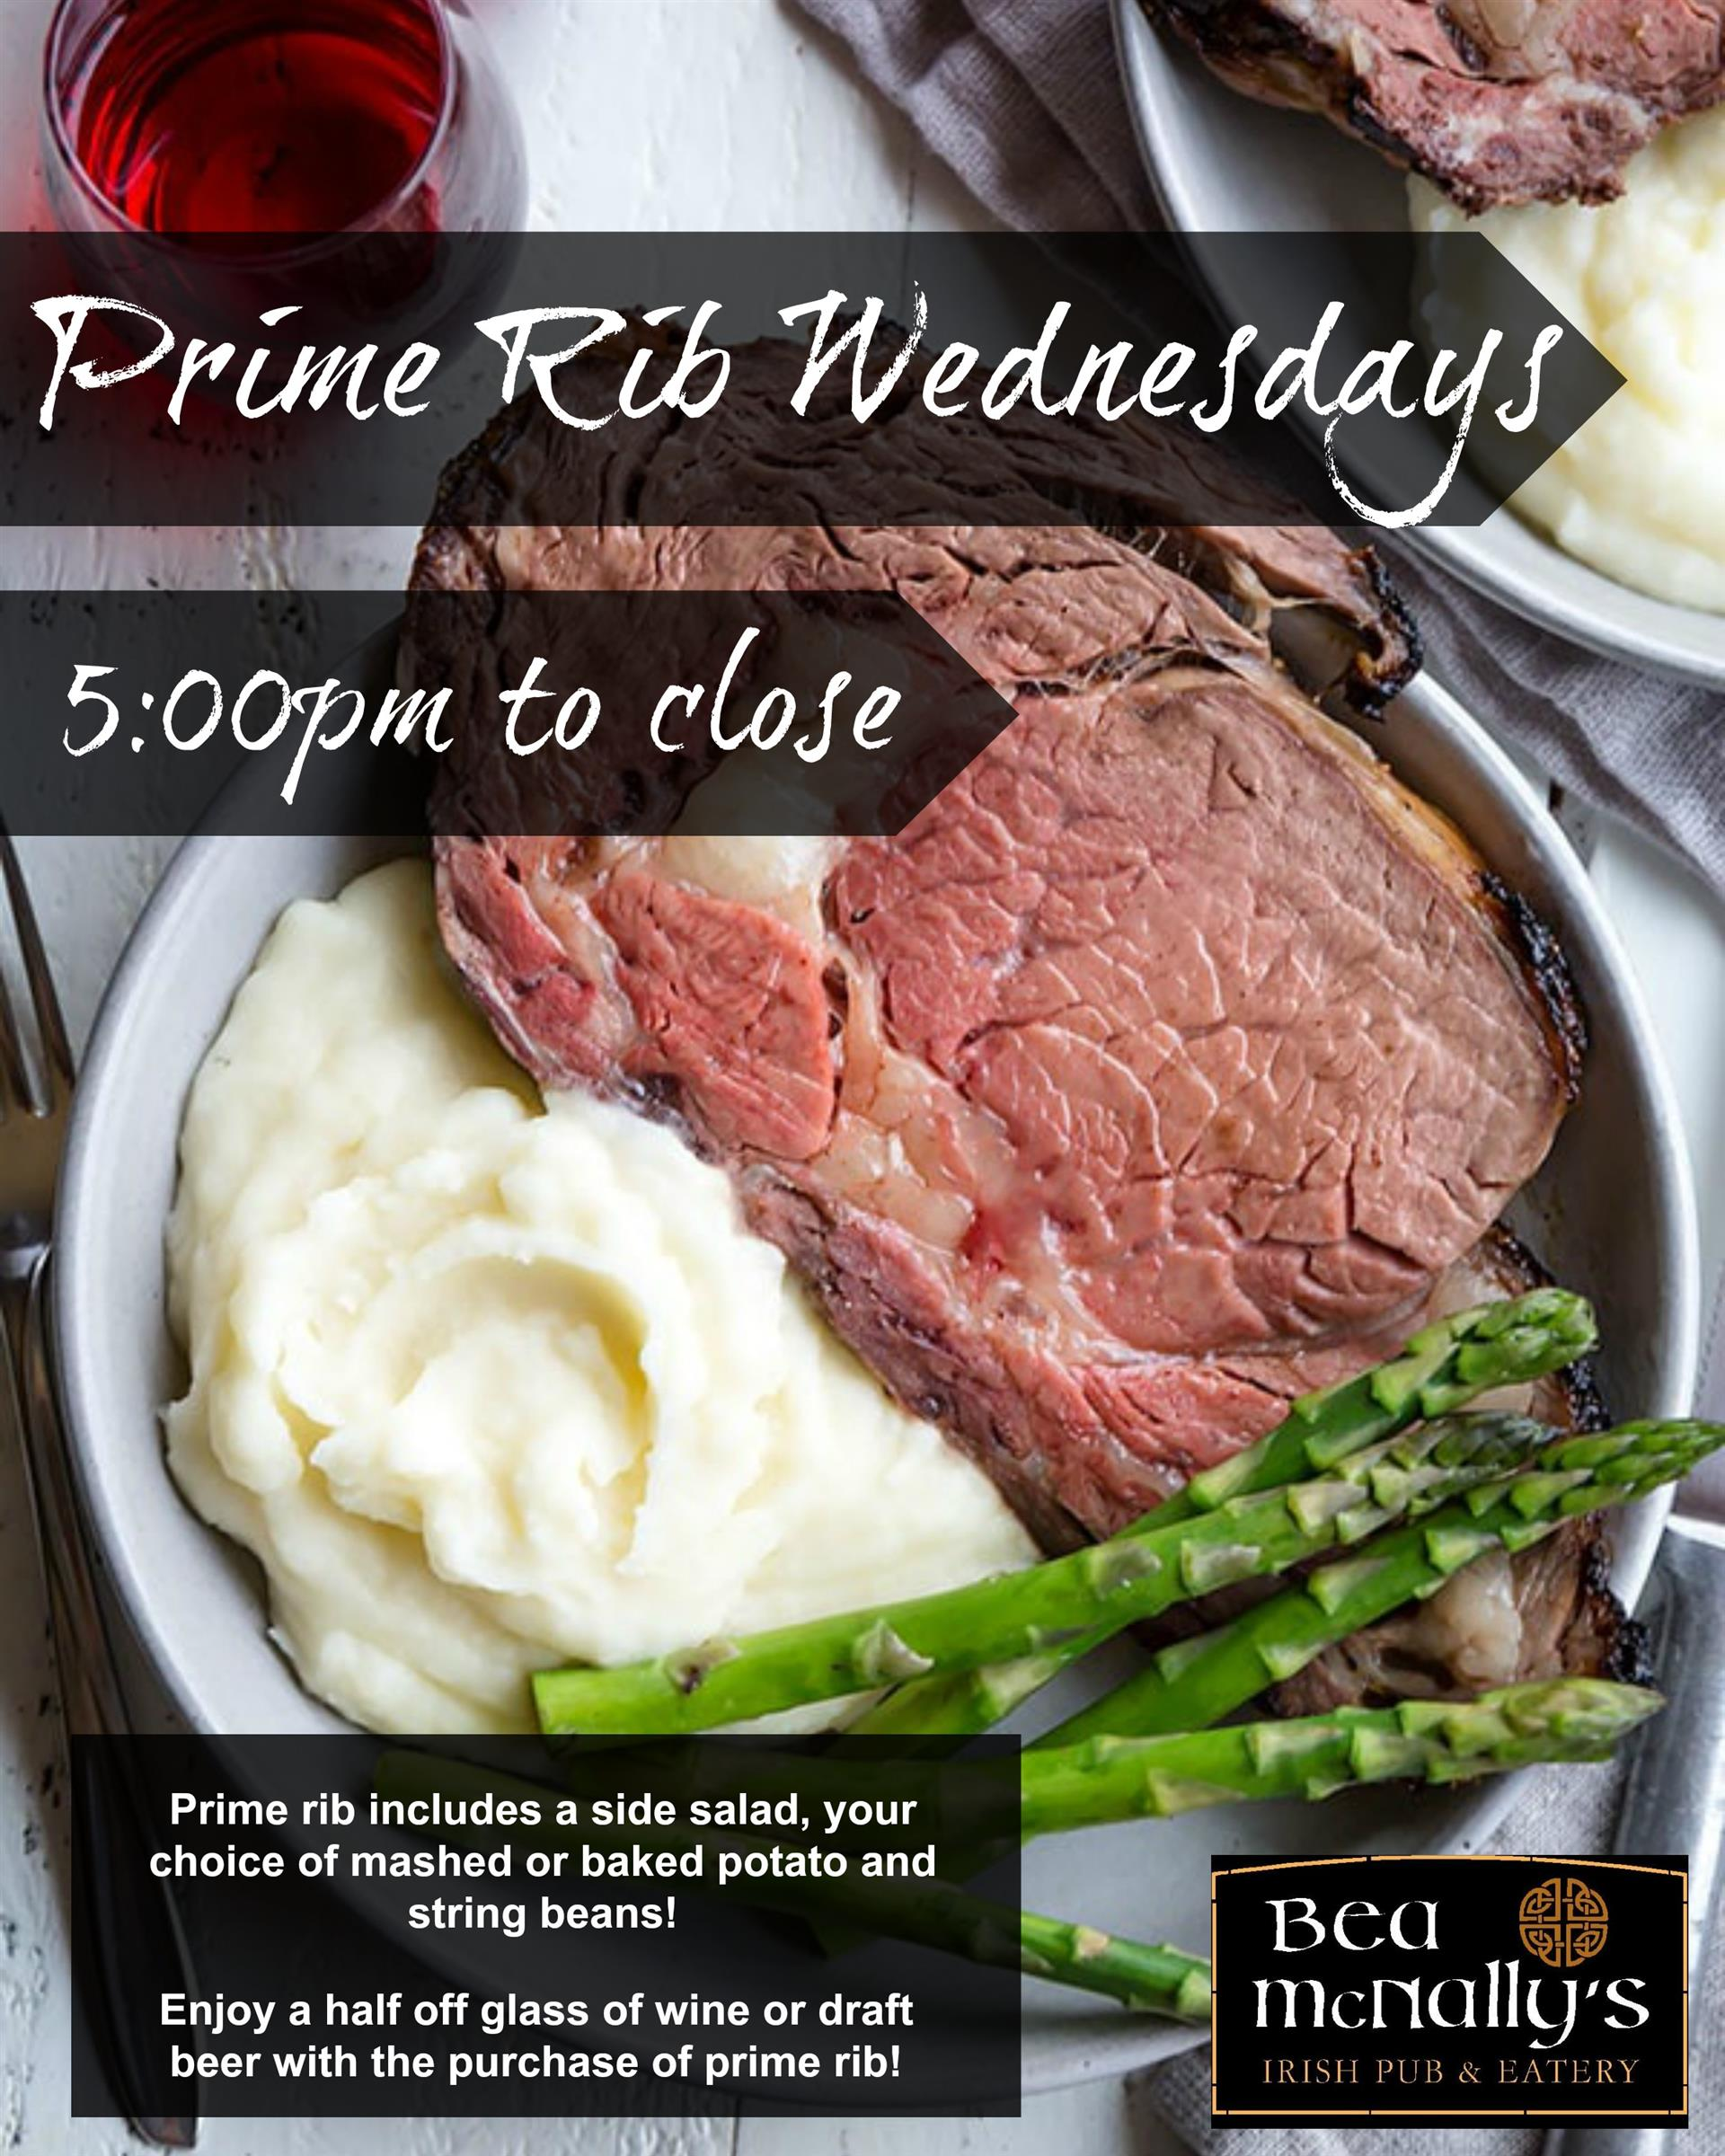 Prime rib wednesdays 5:00pm to close